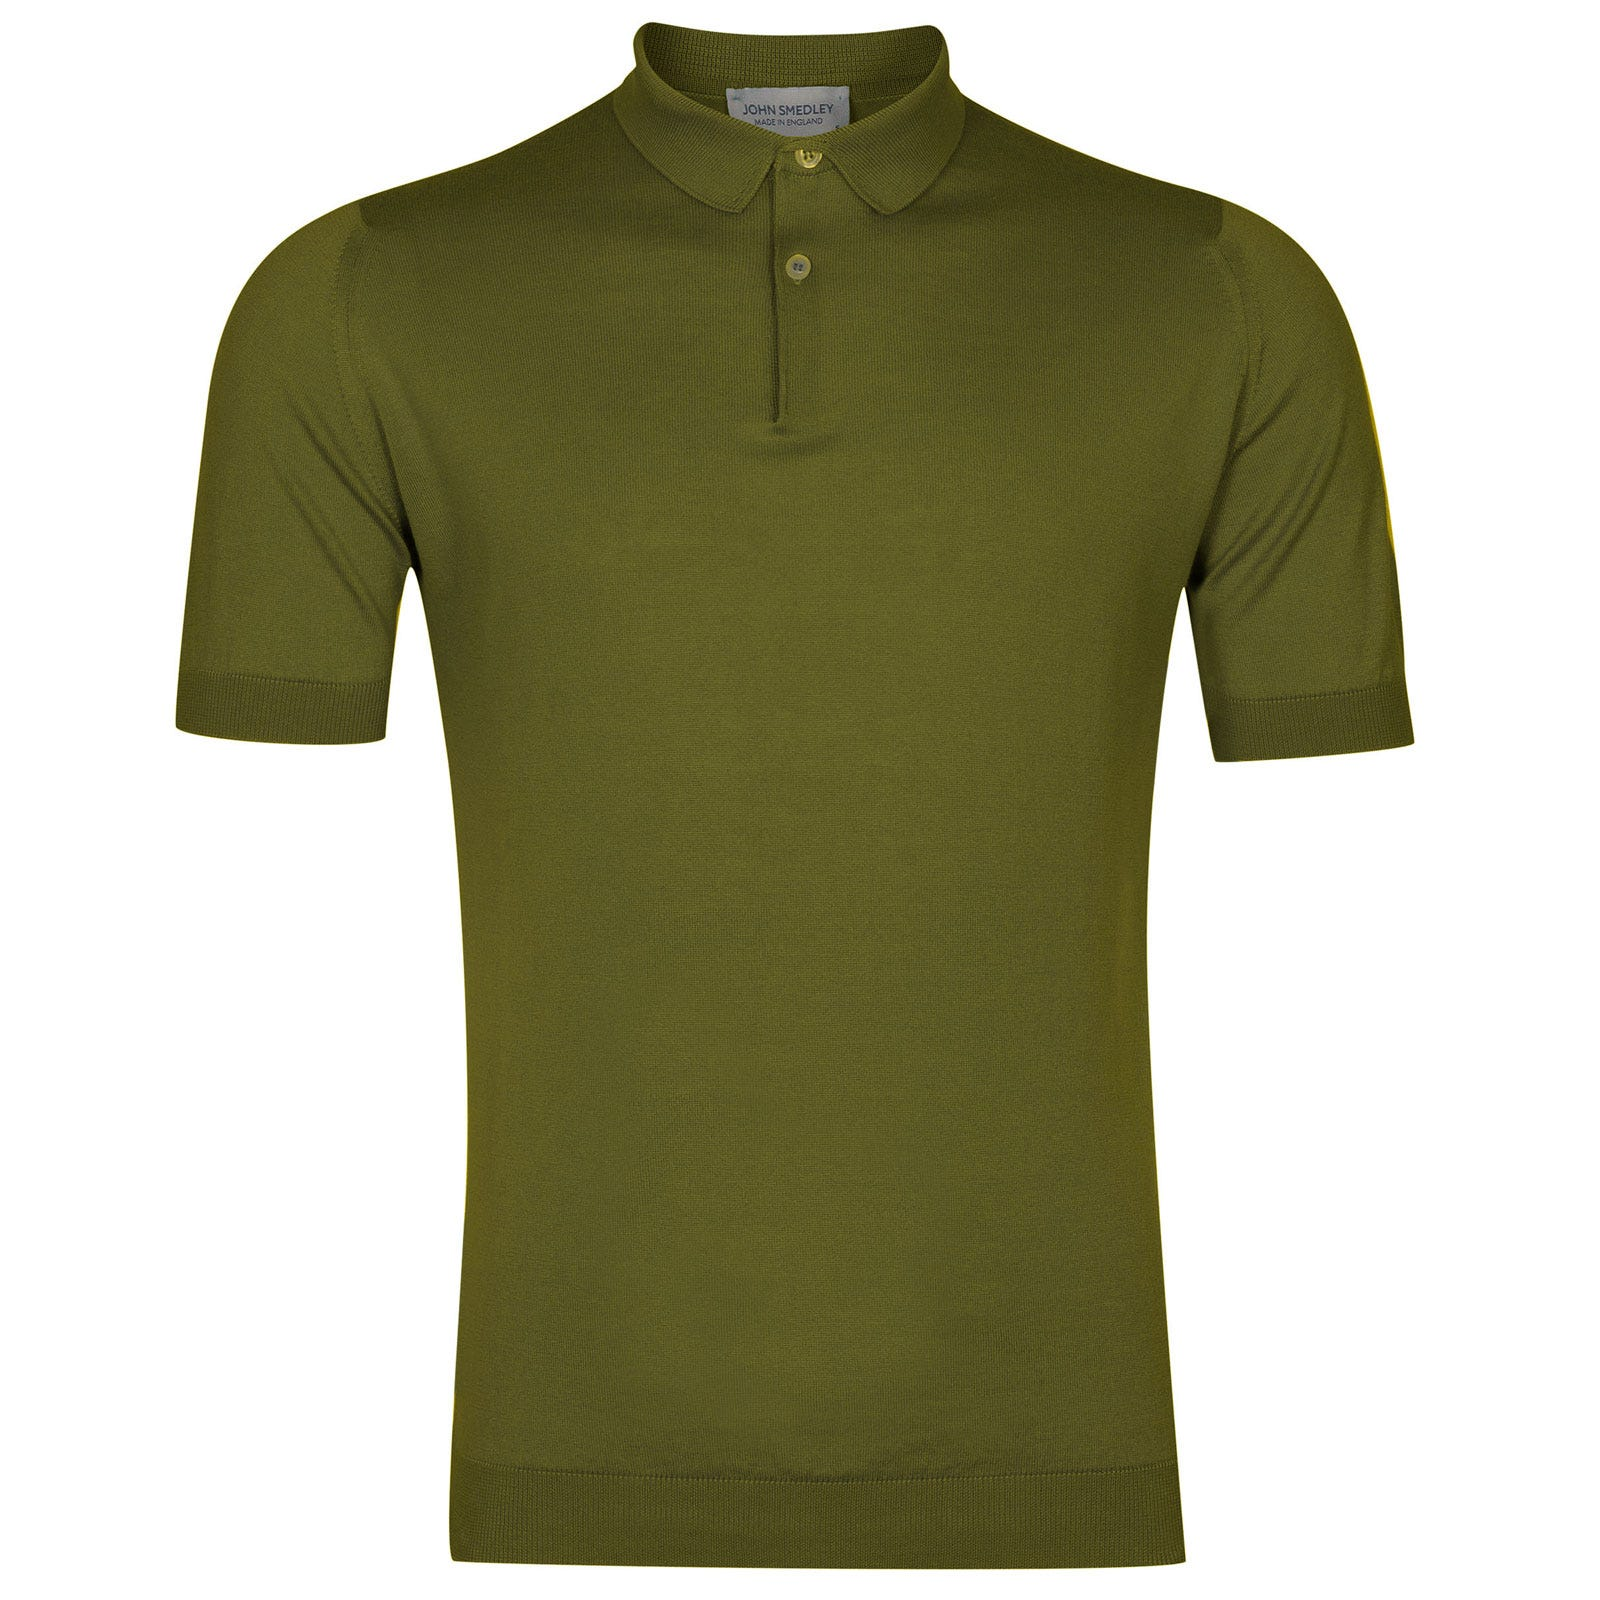 John Smedley rhodes Sea Island Cotton Shirt in Lumsdale Green-S